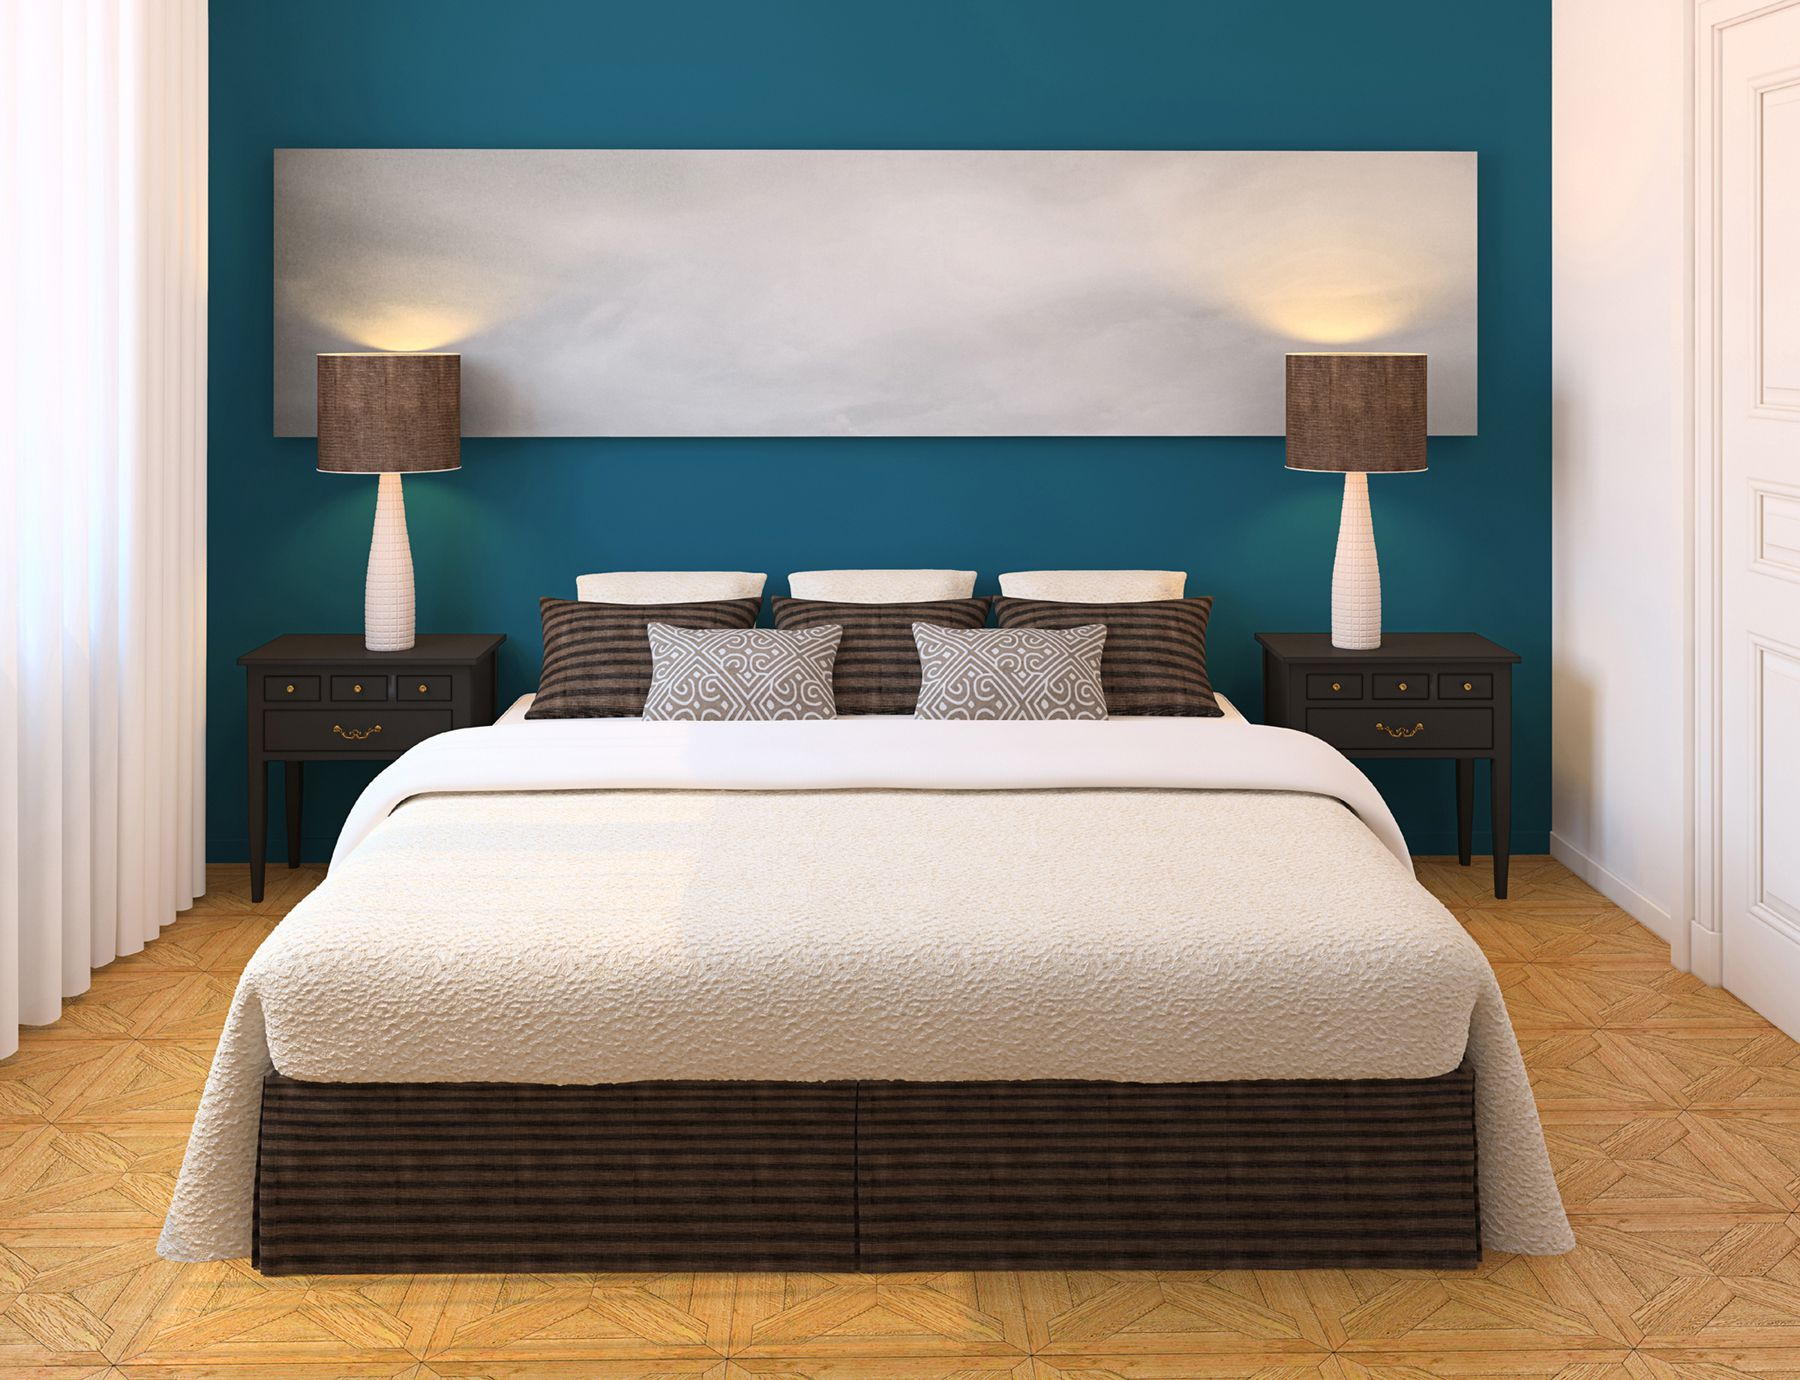 Choose Blue Bedroom Paint Ideas for Tiny Room with Wide Bed and Classic Nightstands on Cream Flooring